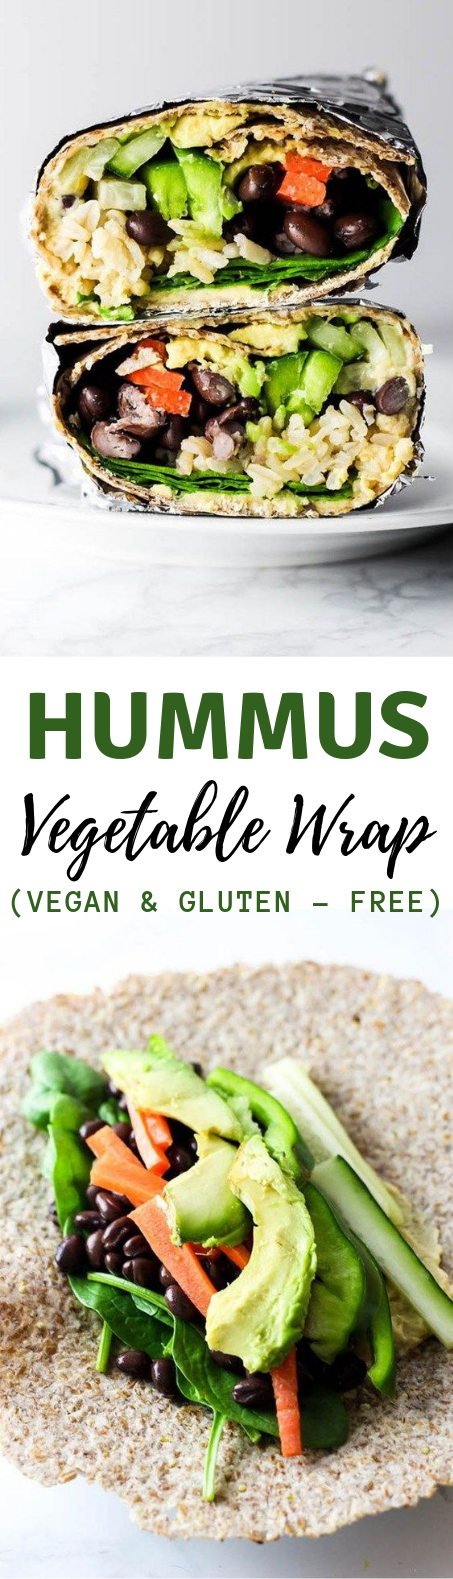 HUMMUS VEGETABLE WRAP #Vegan #Vegetarian